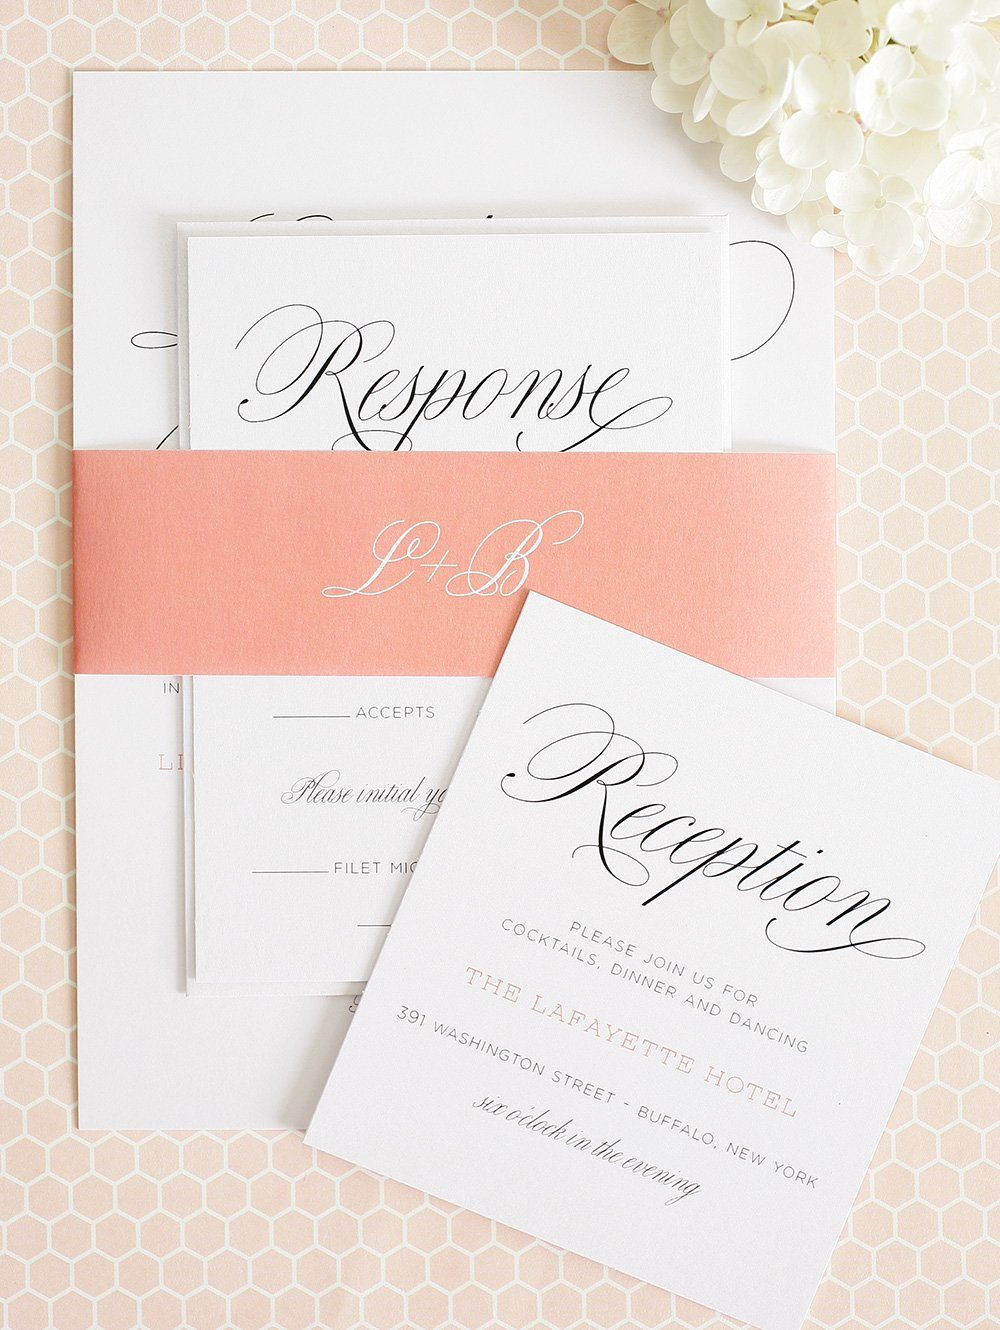 Large script wedding invitations wedding invitations garden wedding invitations monicamarmolfo Image collections